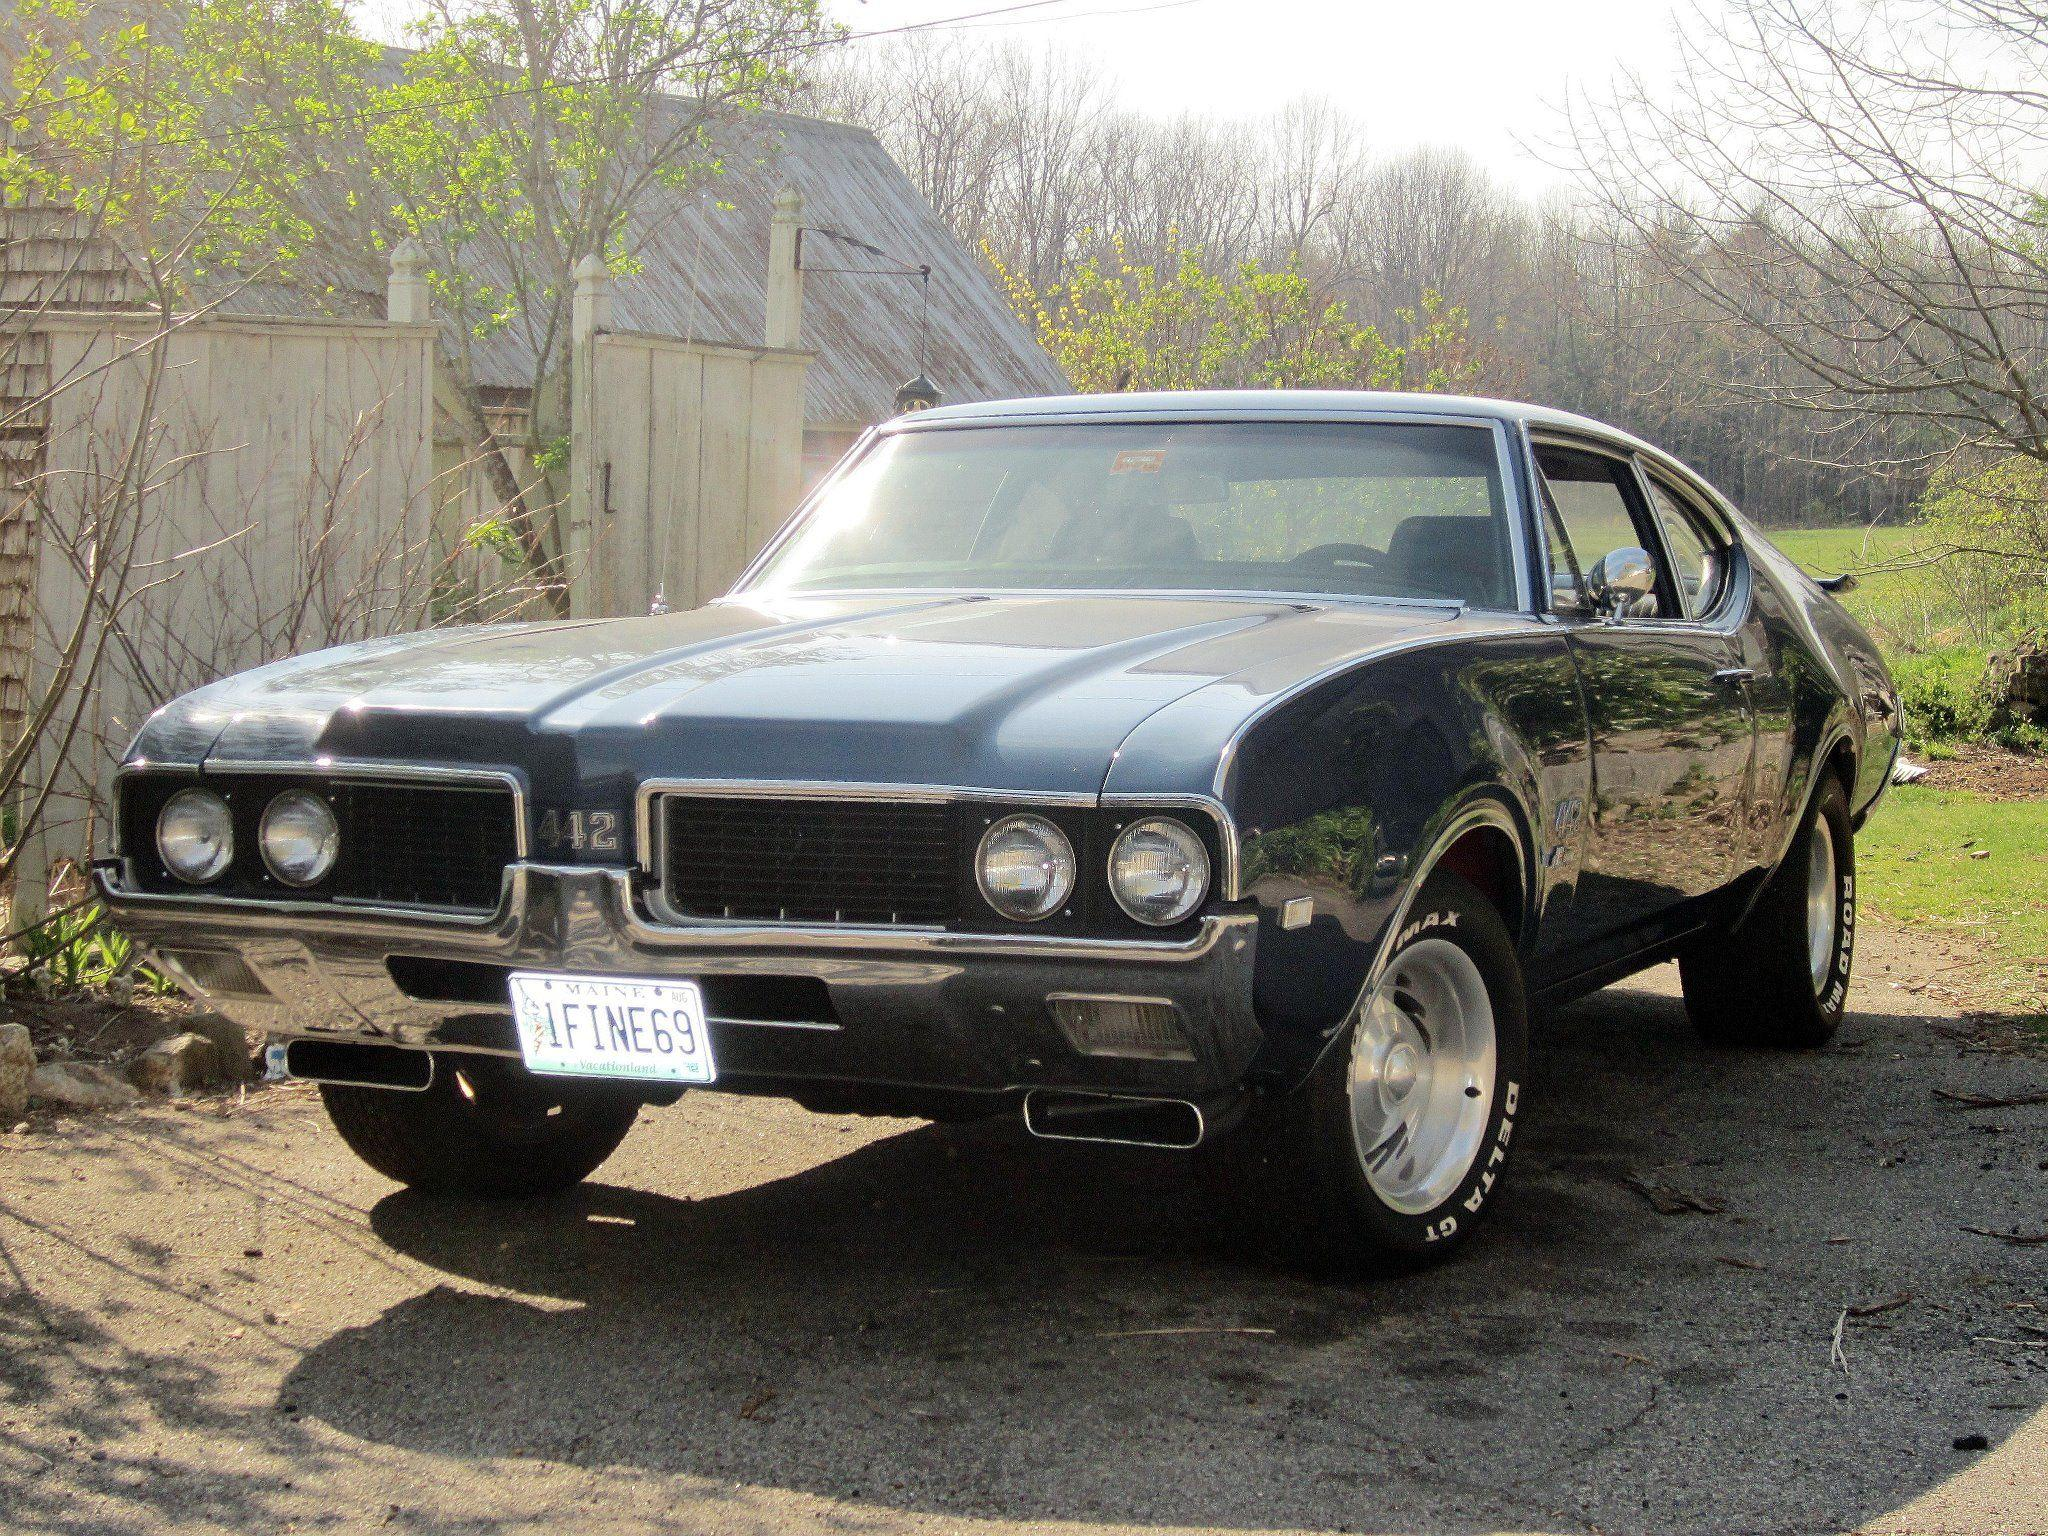 The ultimate muscle car from Oldsmobile [1969 Olds 442]